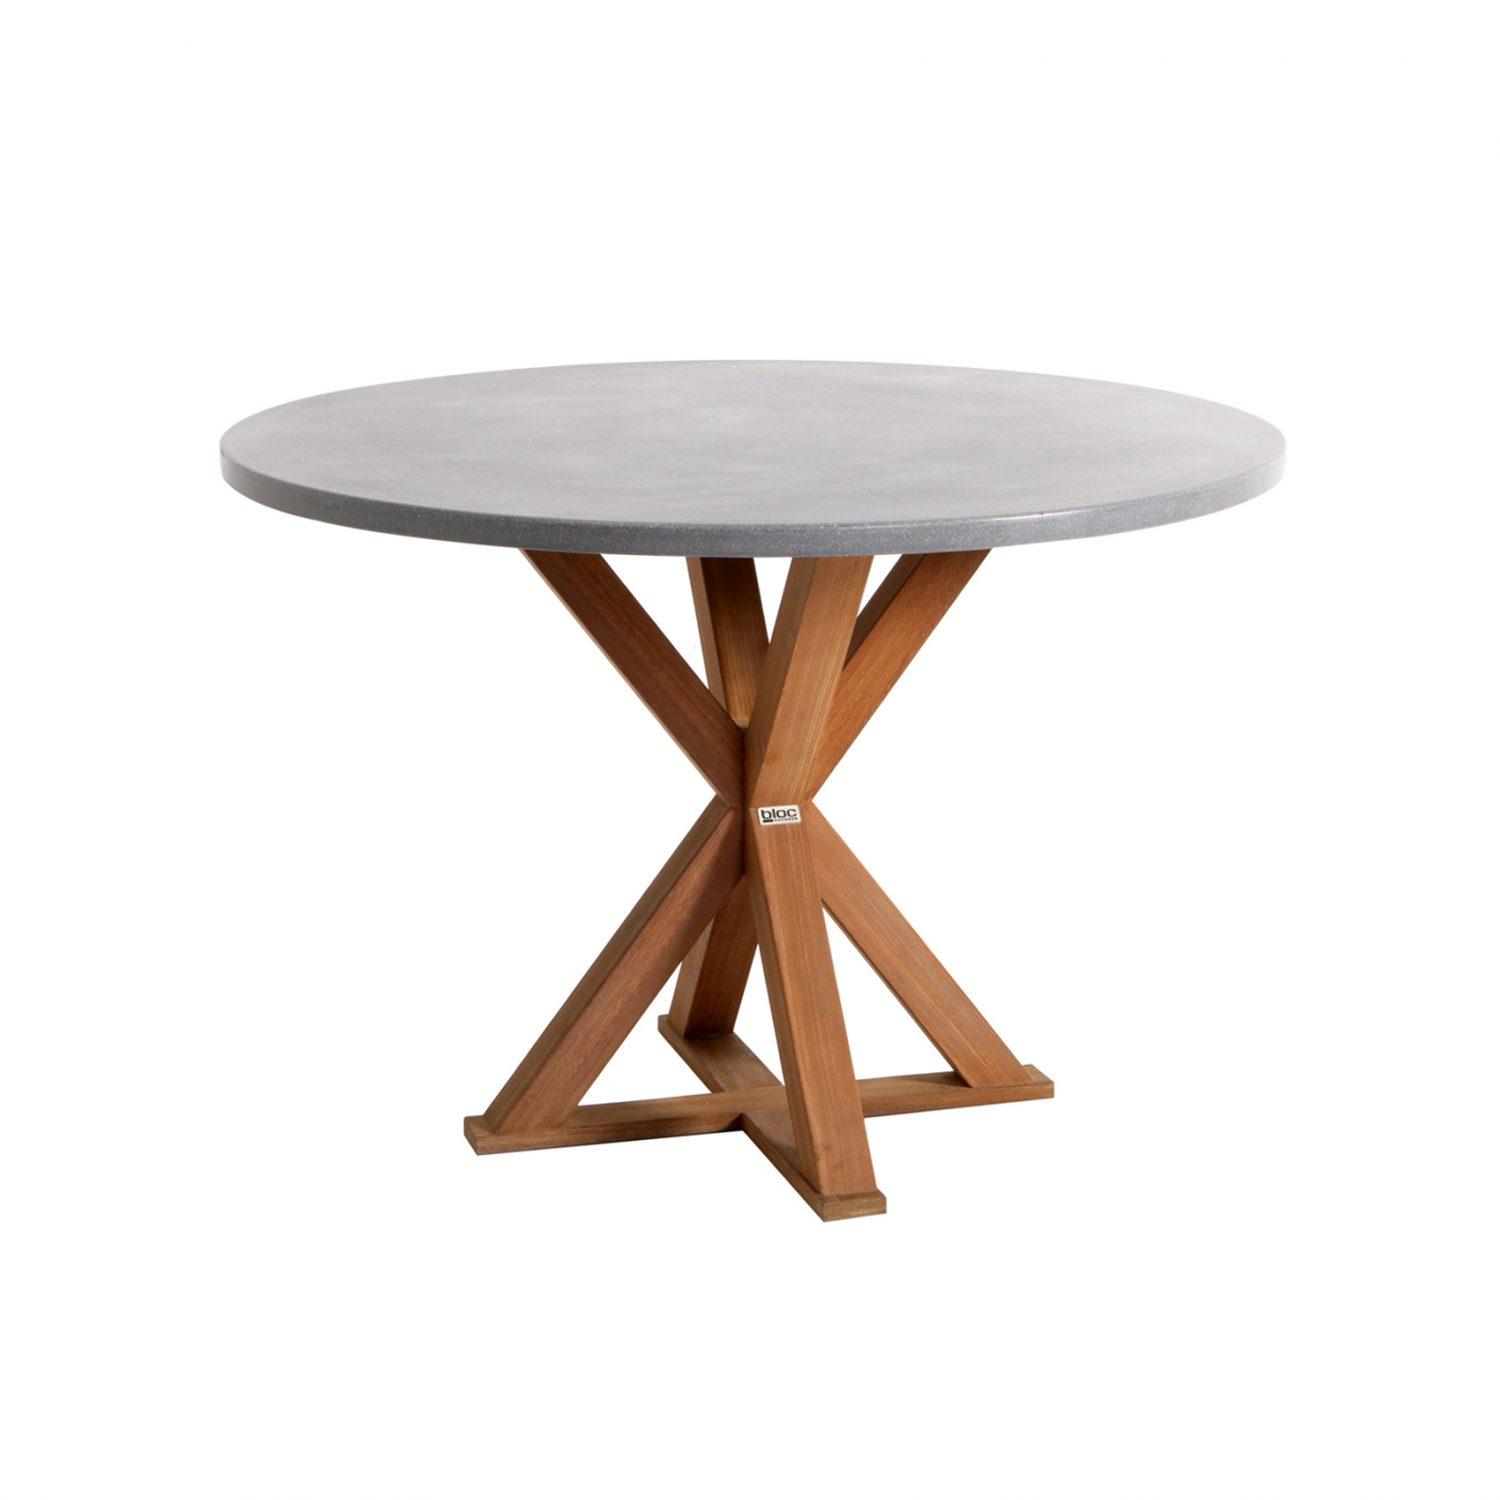 Barcelona Round Dining Table - Concrete Top